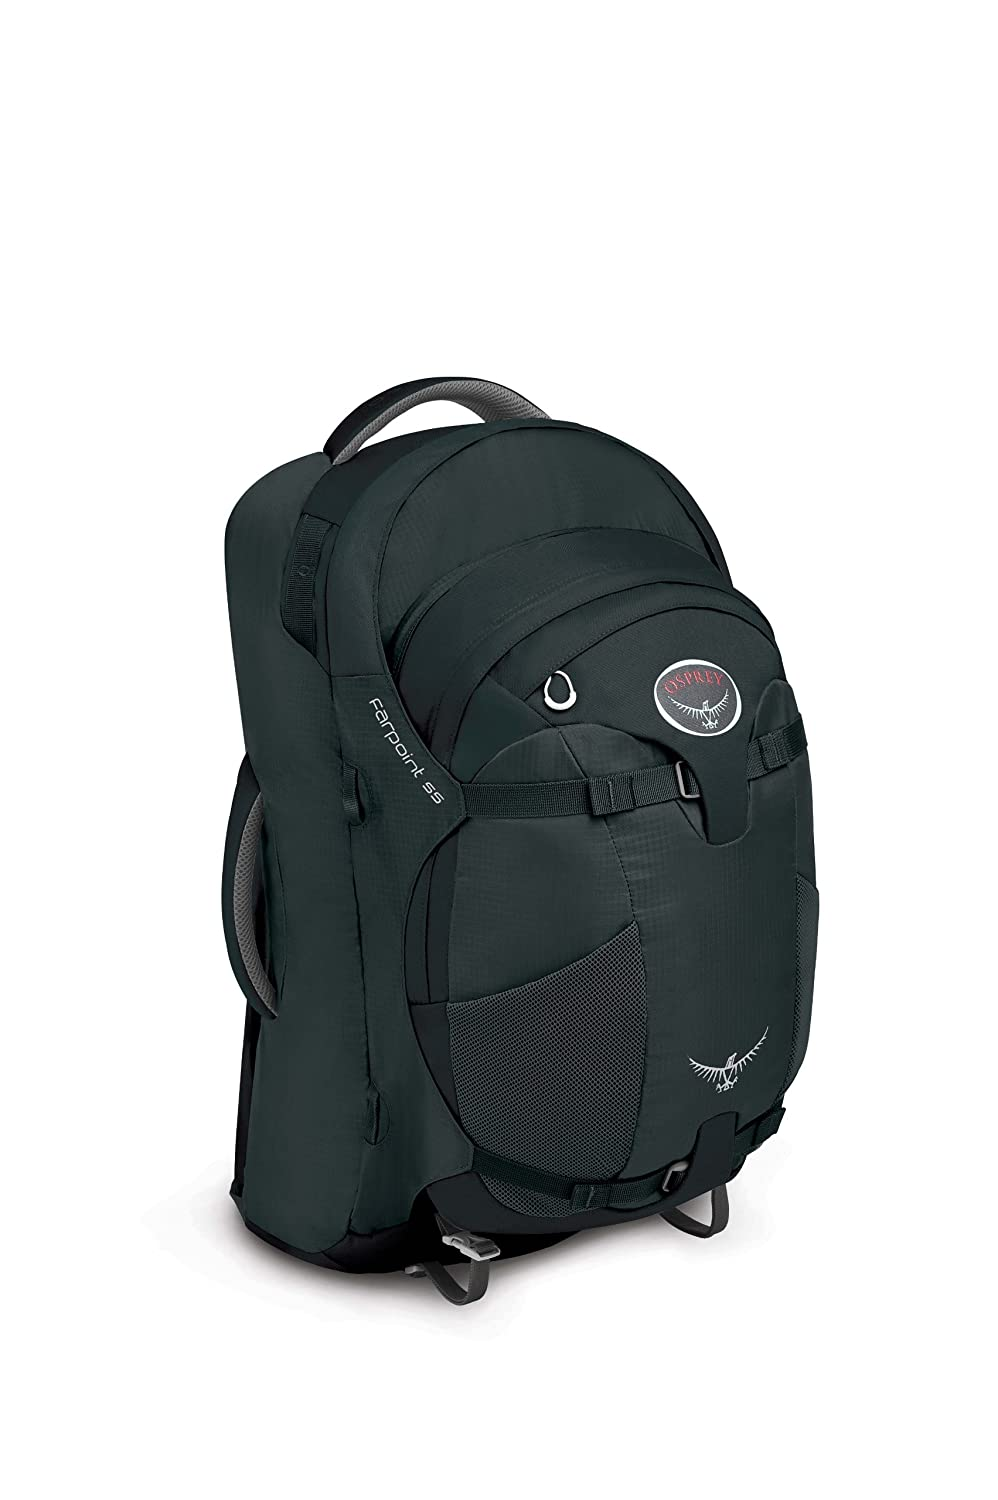 d74e2a8bed74 Travel Backpack With Wheels Review- Fenix Toulouse Handball